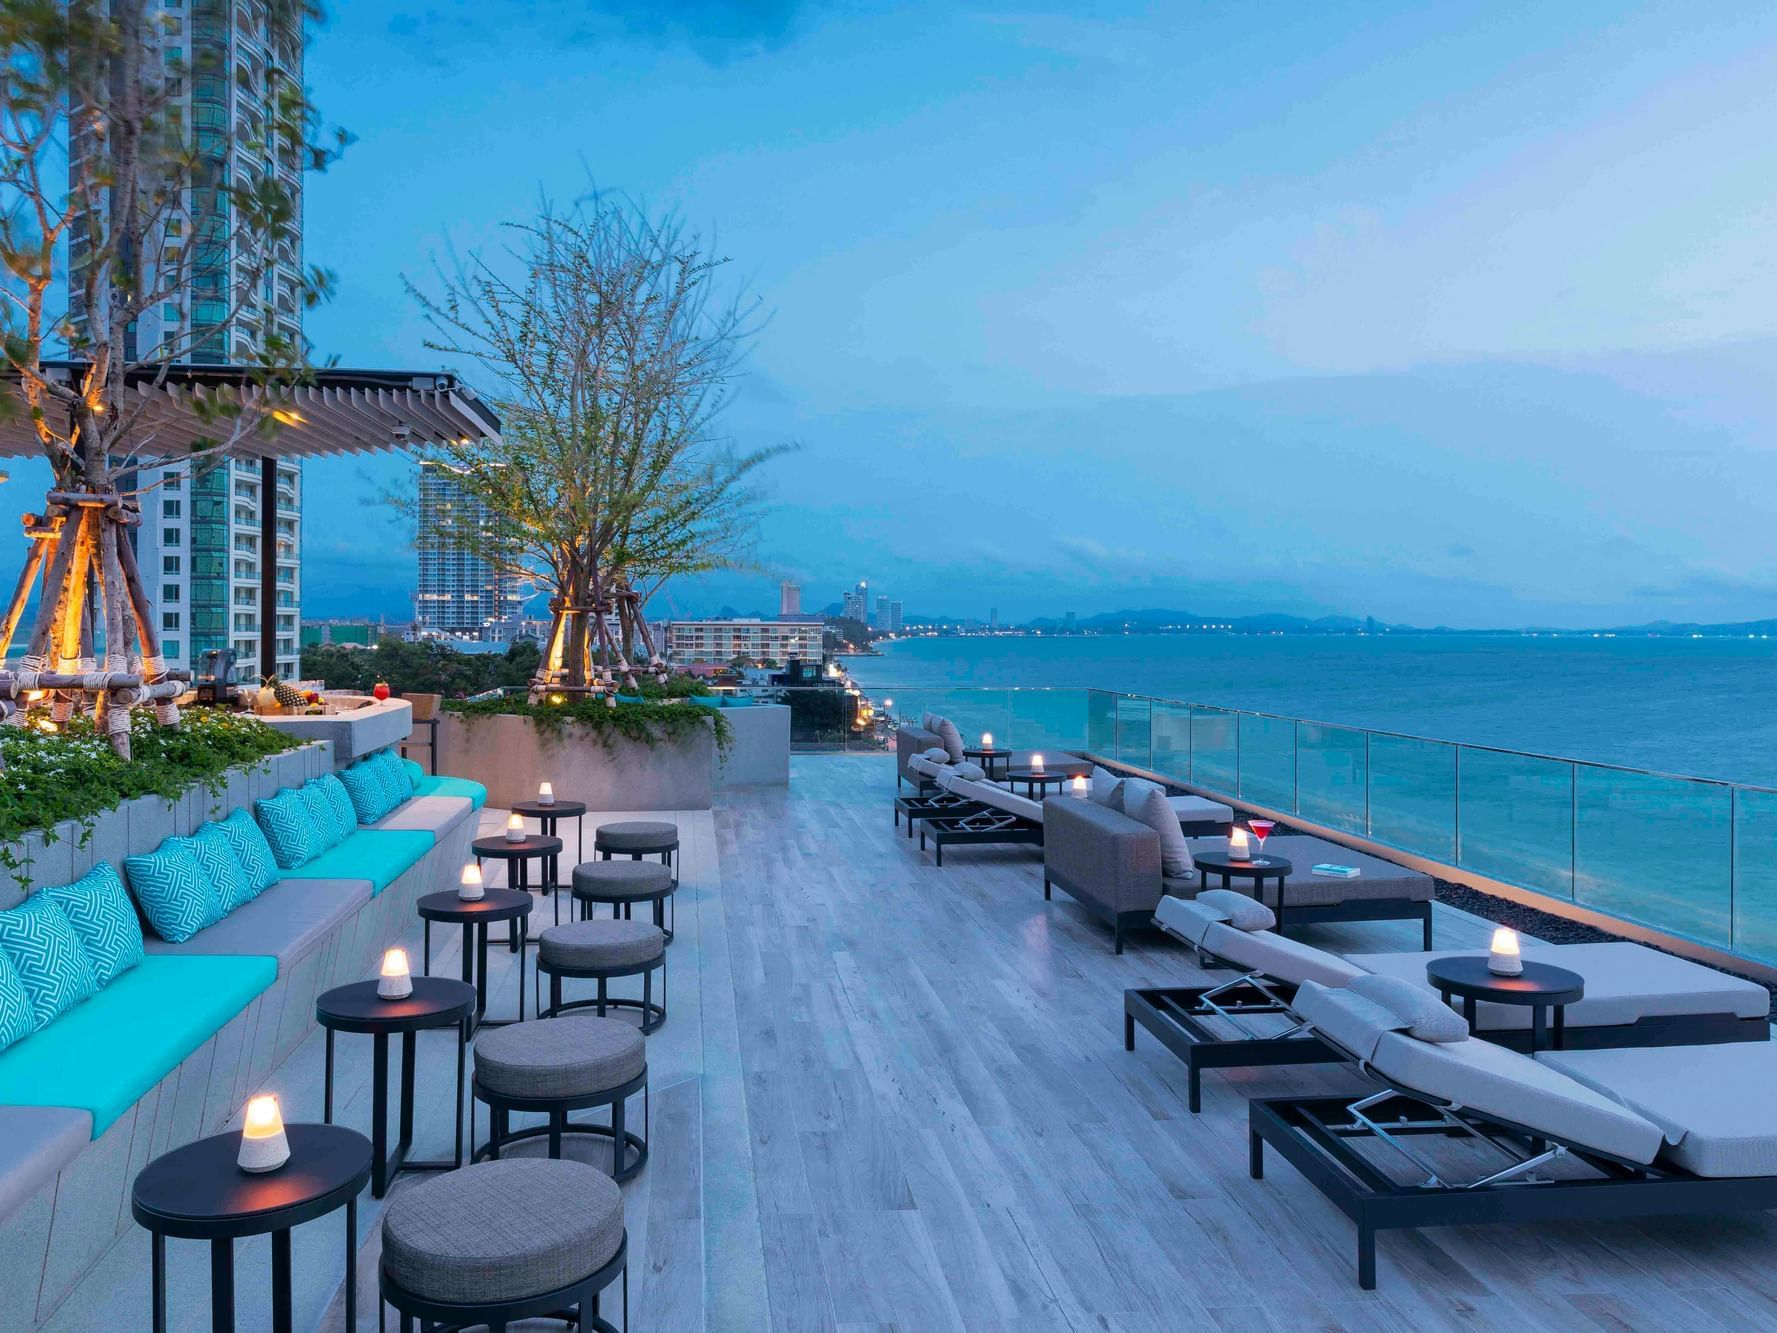 outdoor pool lounge area facing the sea at U Hotels and Resorts